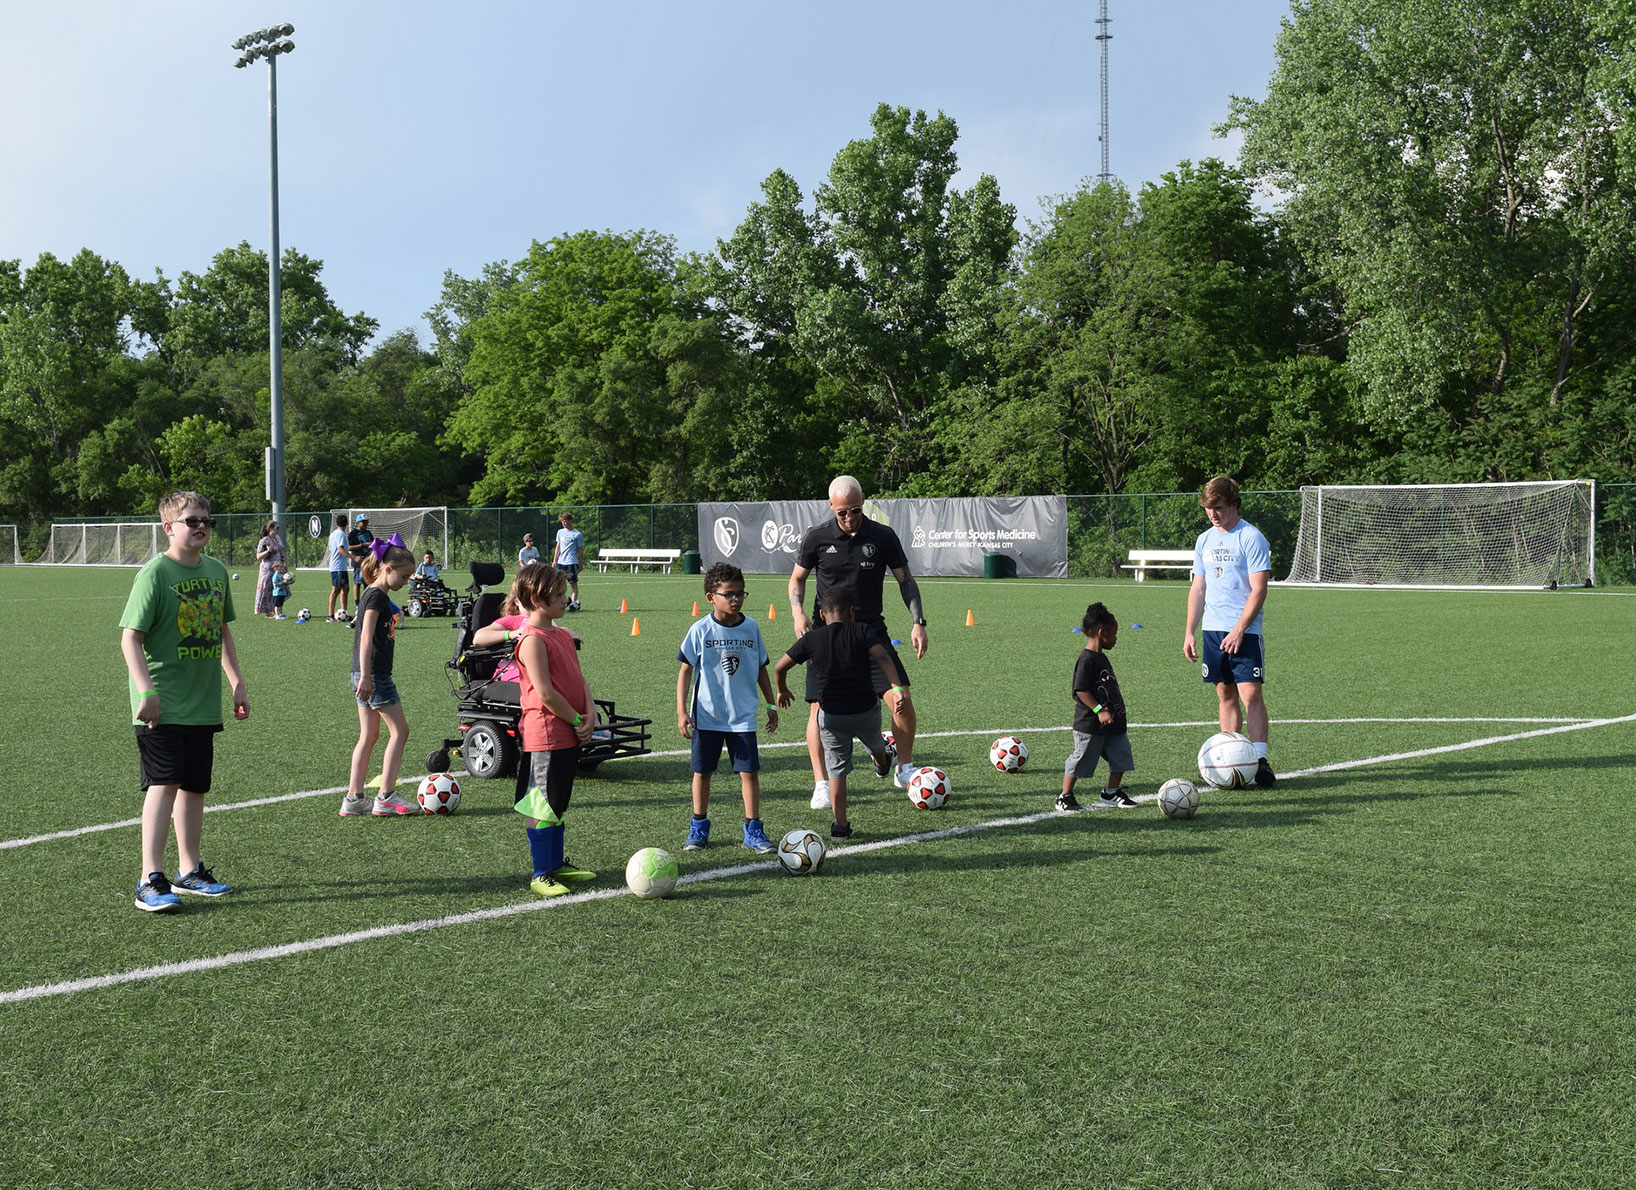 Sporting KC's Soccer For All Abilities Clinic